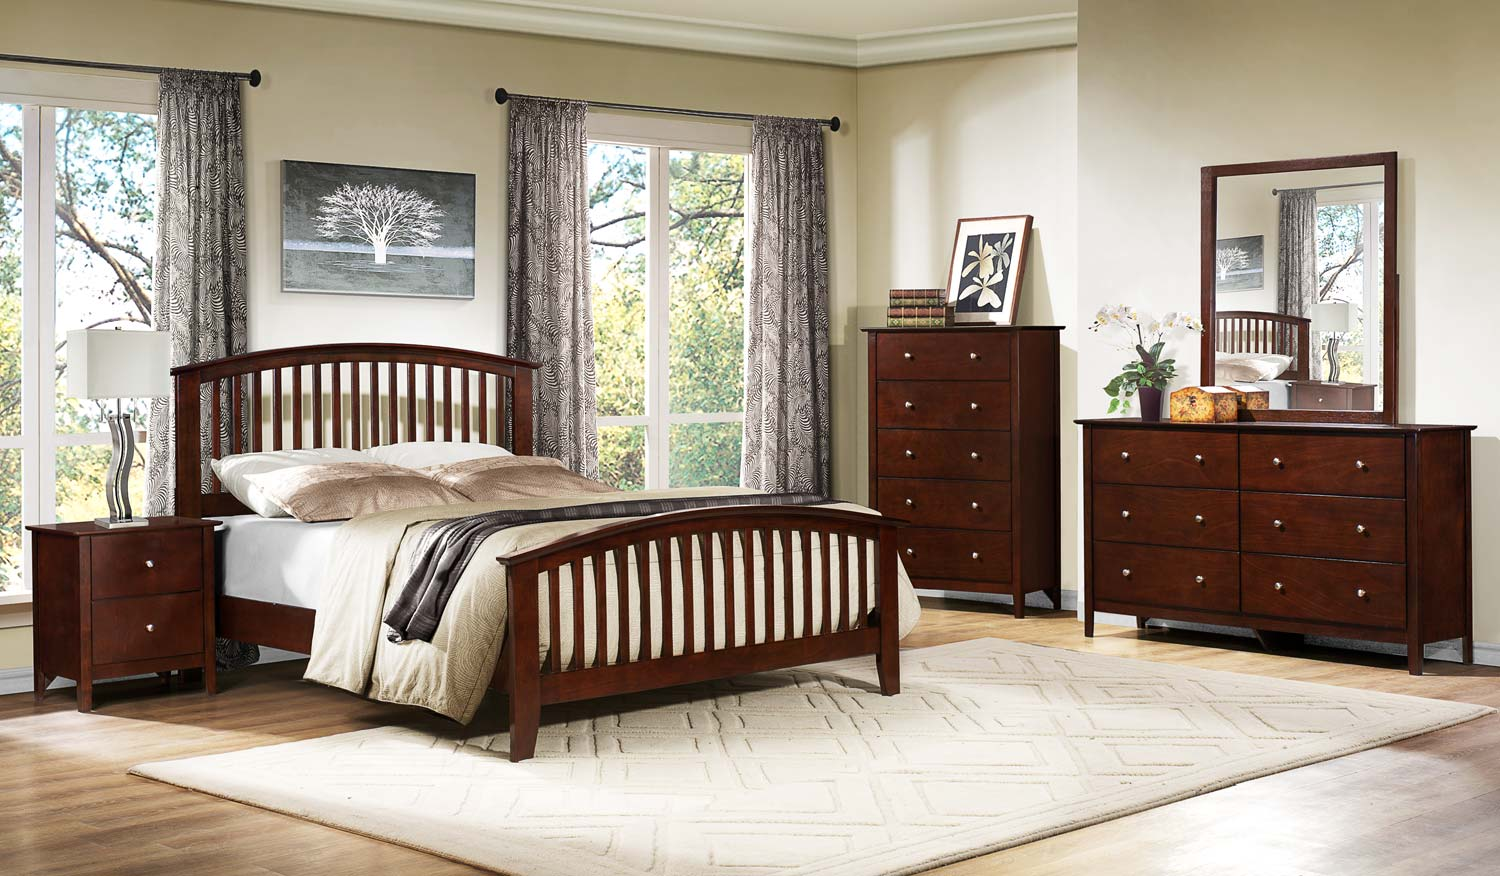 Homelegance Nancy Bedroom Set - Merlot